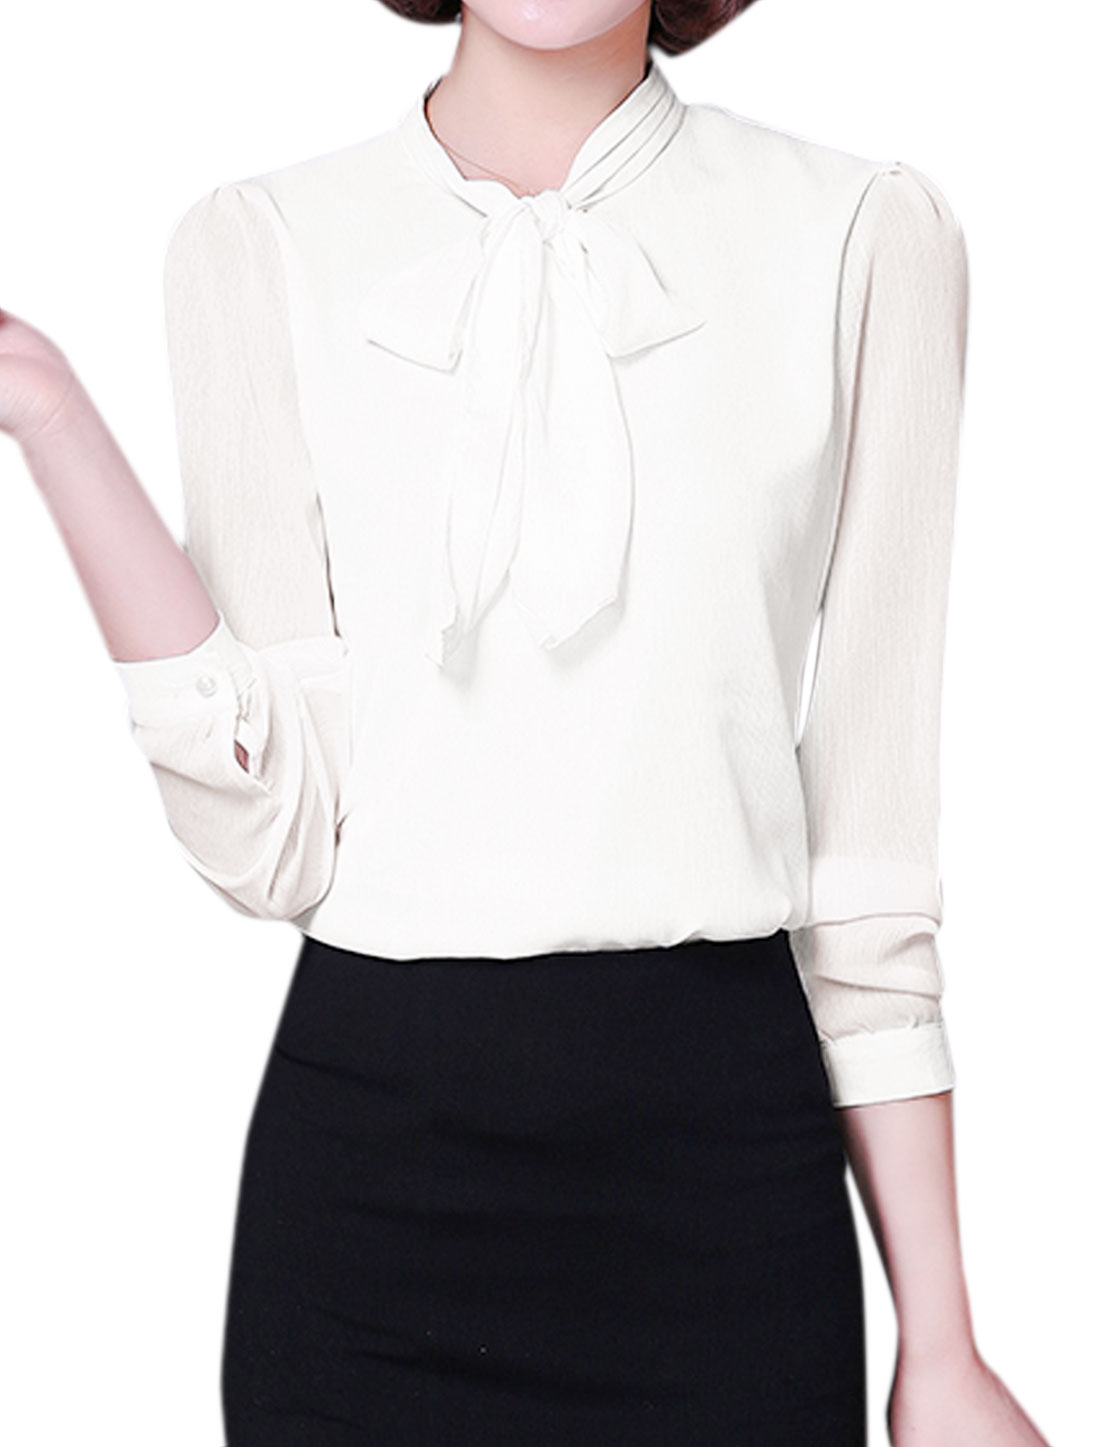 Ladies Tie-Bow Neck Long Sleeves Slim Fit Blouse White M